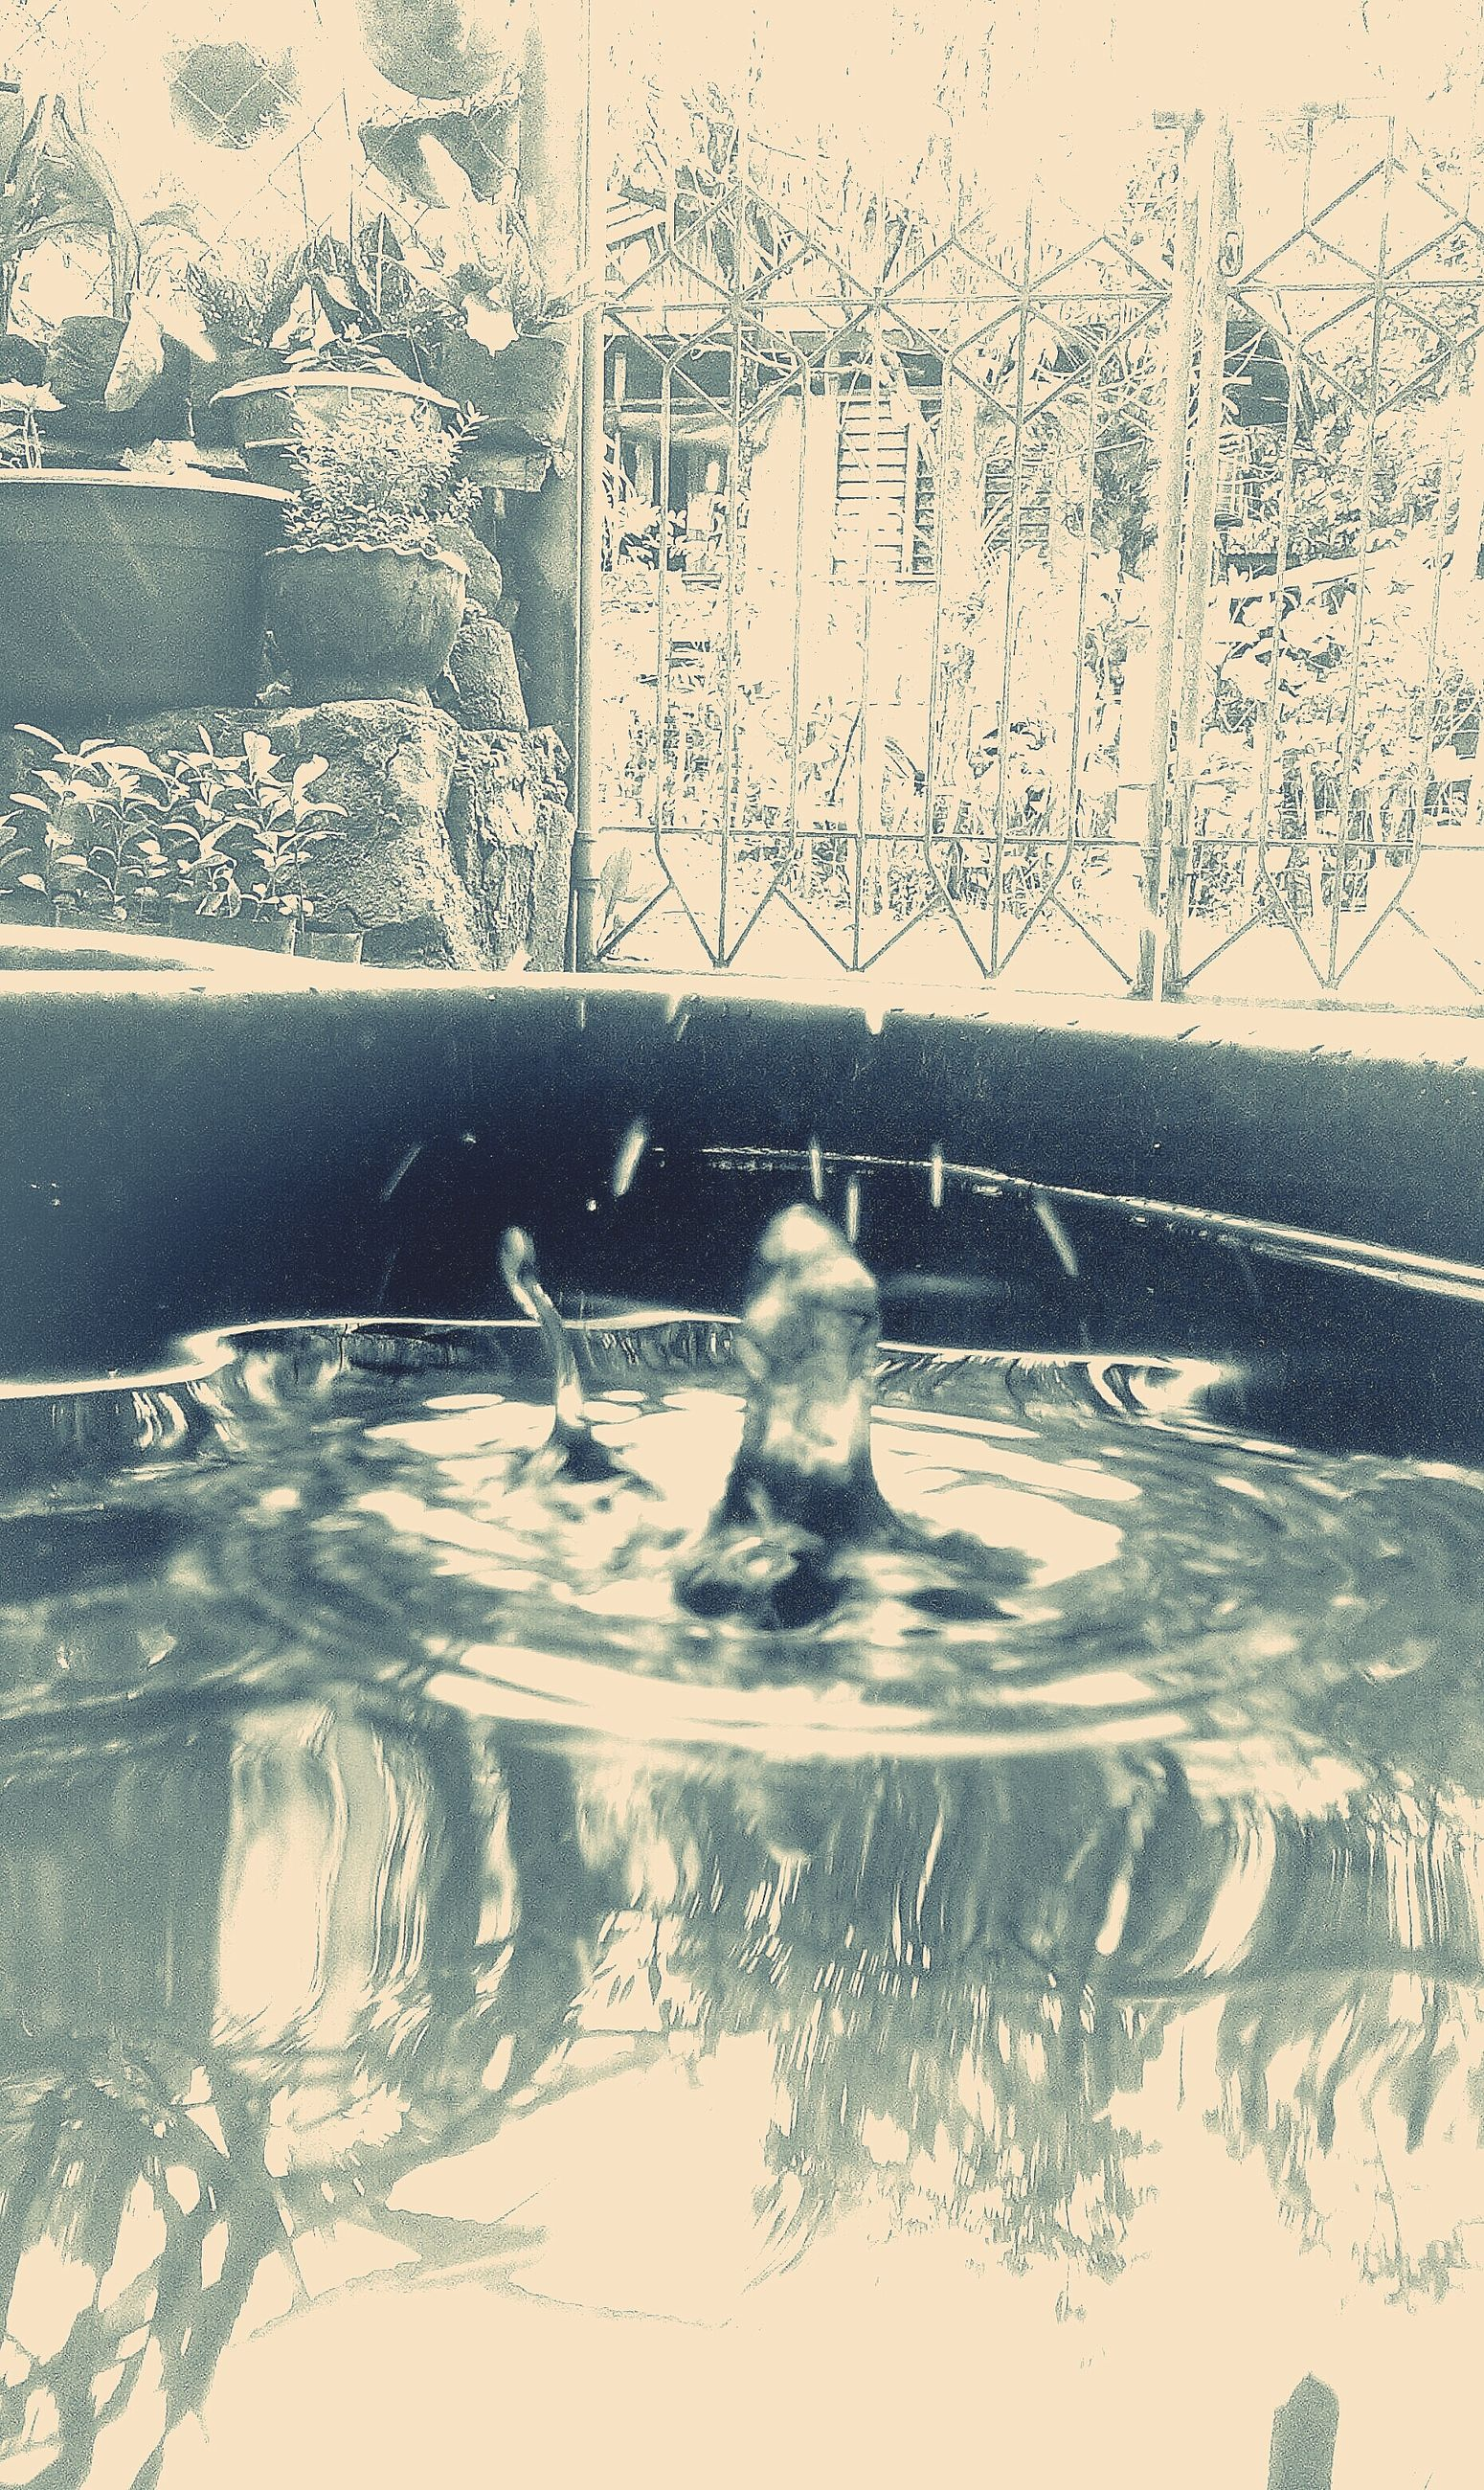 water, splashing, wet, motion, close-up, glass - material, transparent, window, drop, creativity, art, art and craft, fountain, cold temperature, season, day, human representation, reflection, wall - building feature, winter